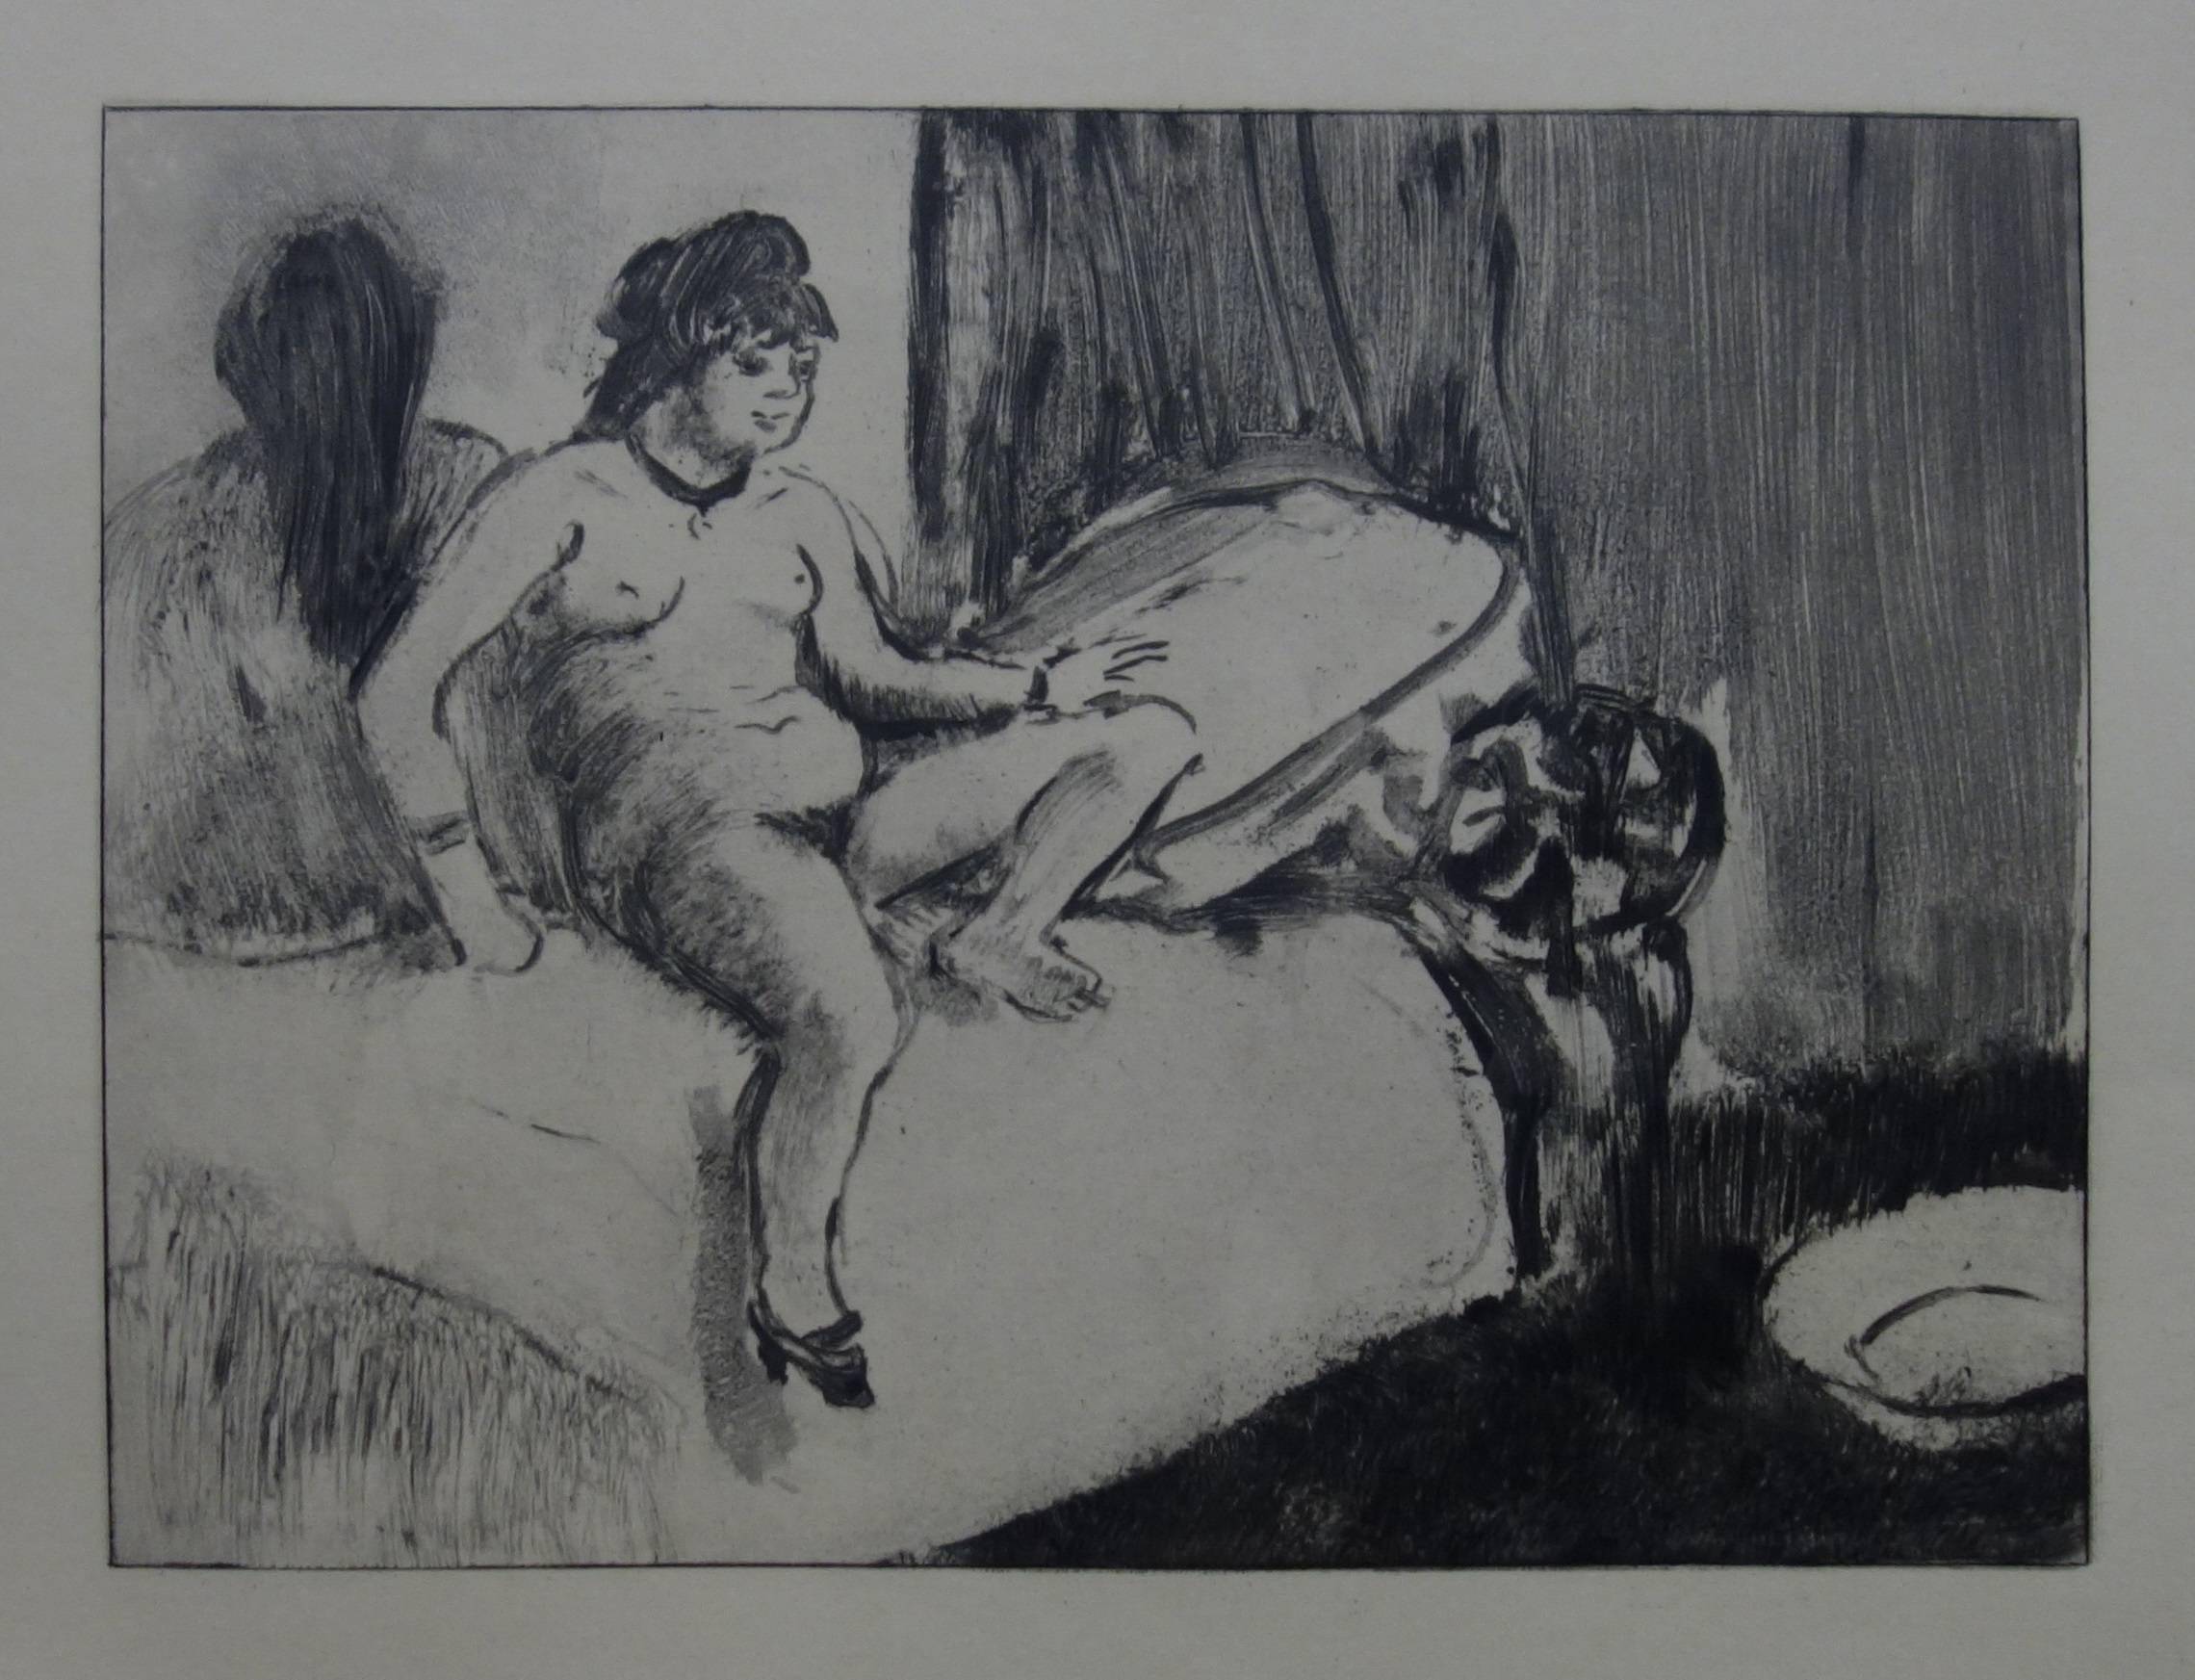 Whorehouse Scene : In the Room with a Miror - Etching